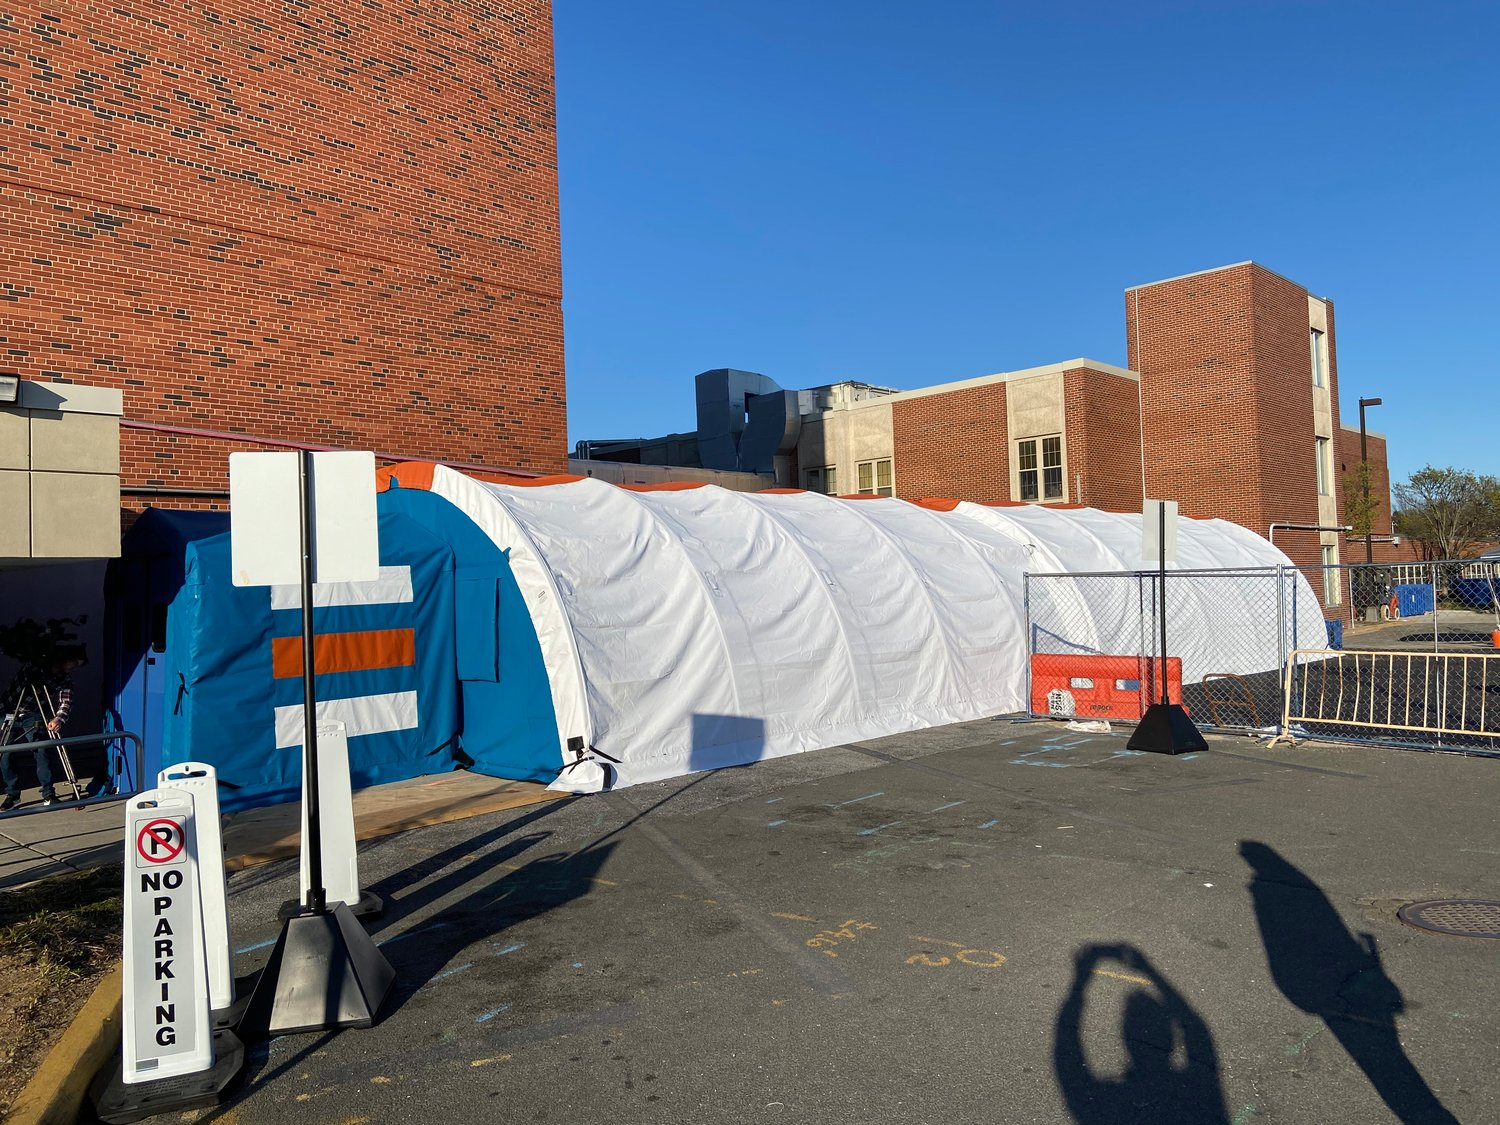 The tents will help hospital administrators separate coronavirus patients from others.